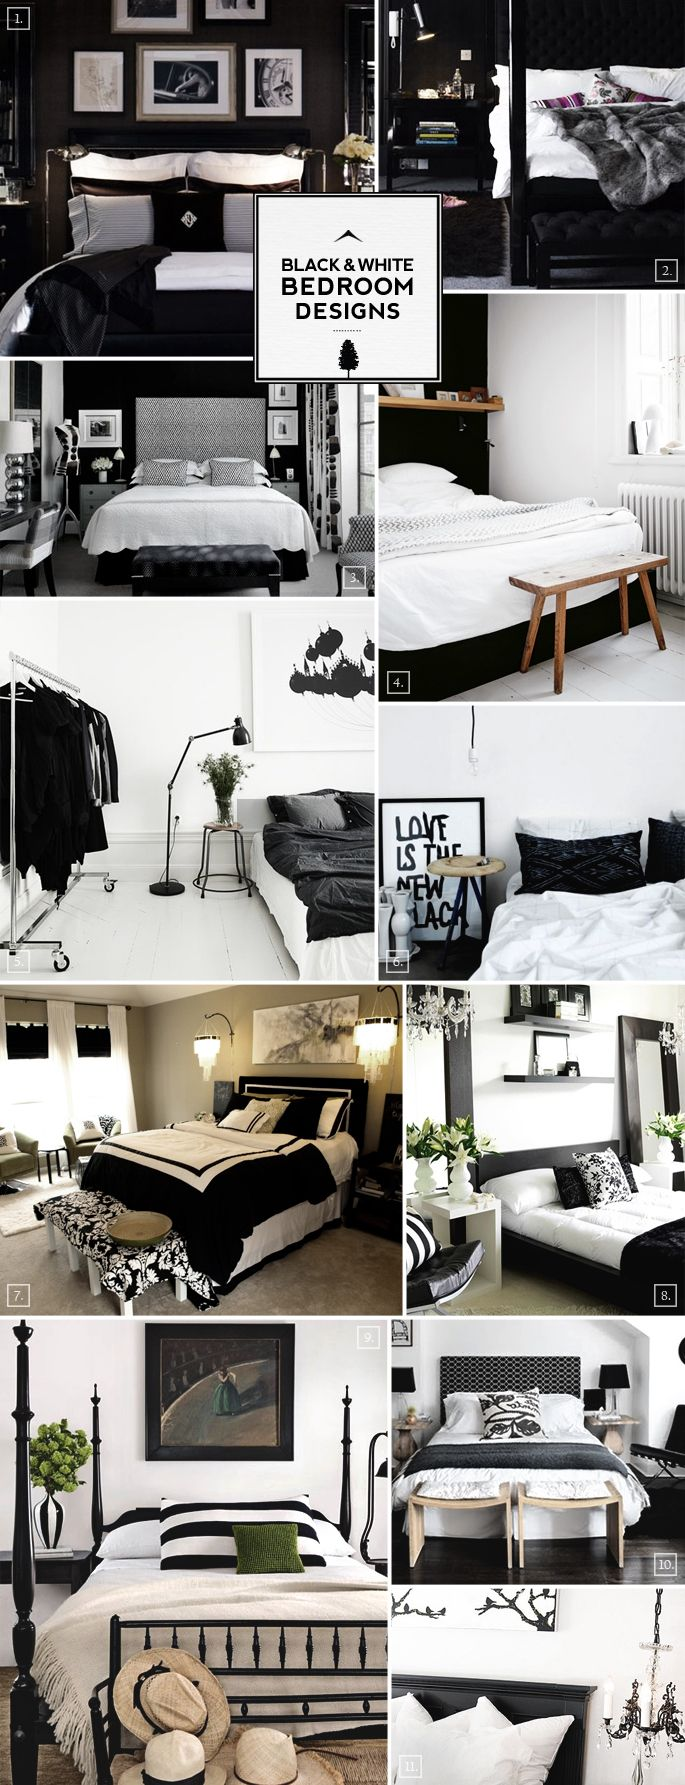 black and white bedroom designs and decor ideas. beautiful ideas. Home Design Ideas